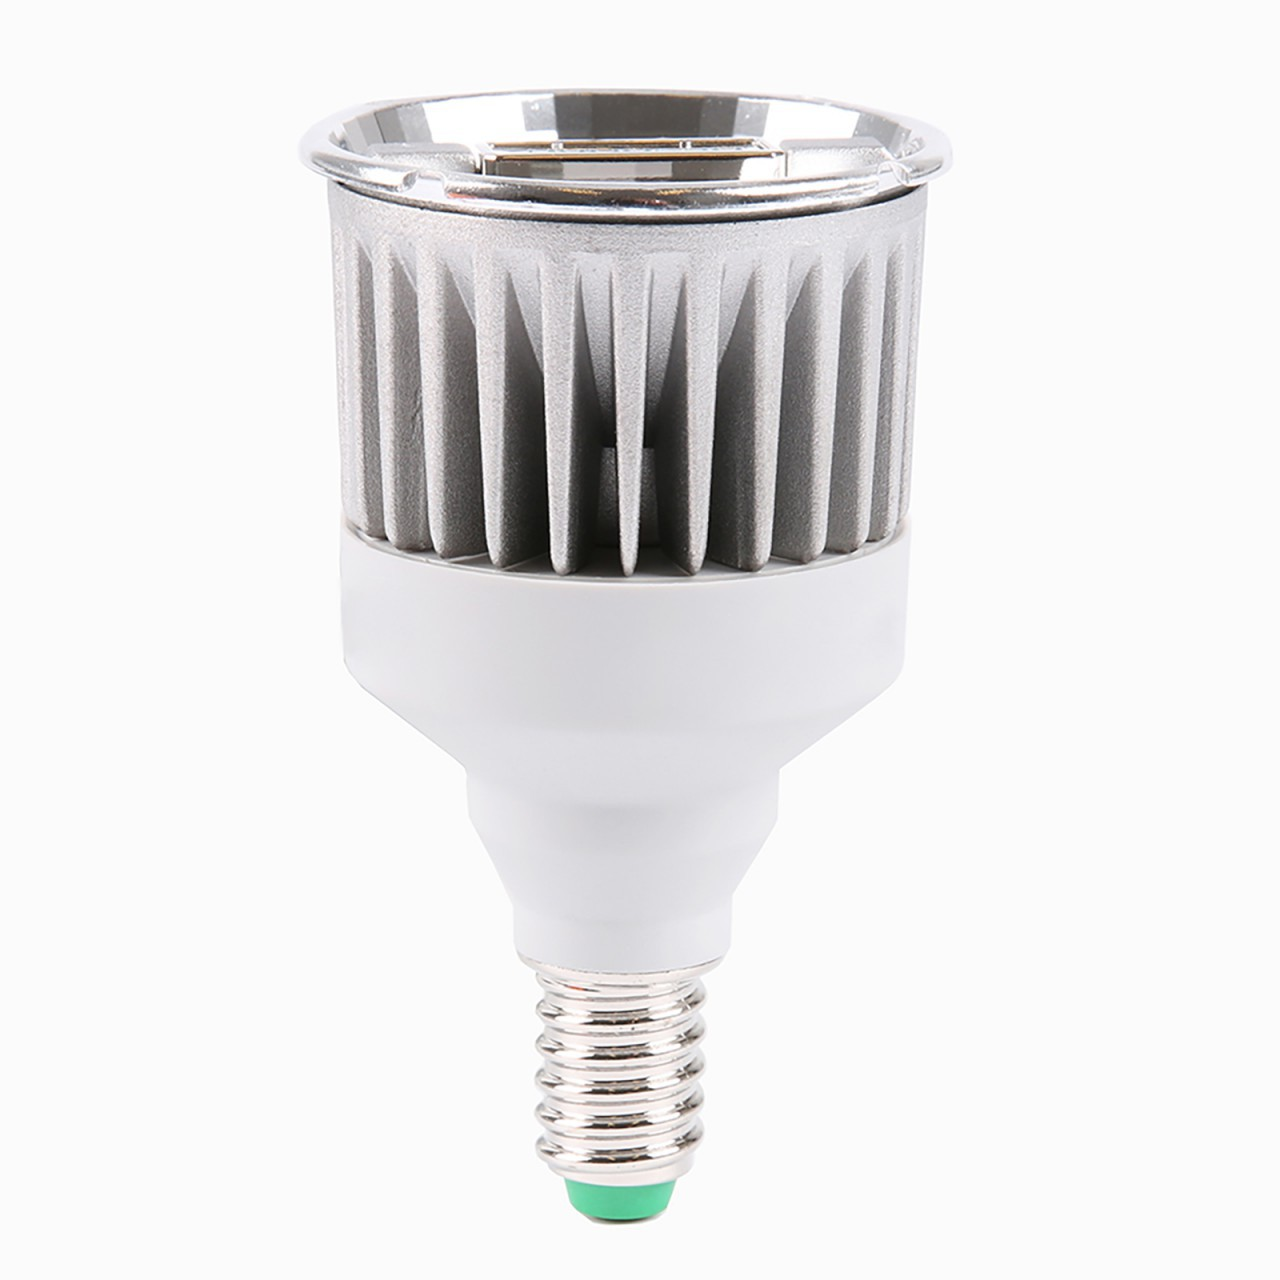 3x 7w e14 megaman led 2800k warm white reflector lamp conforms 35watt bulbs ebay. Black Bedroom Furniture Sets. Home Design Ideas